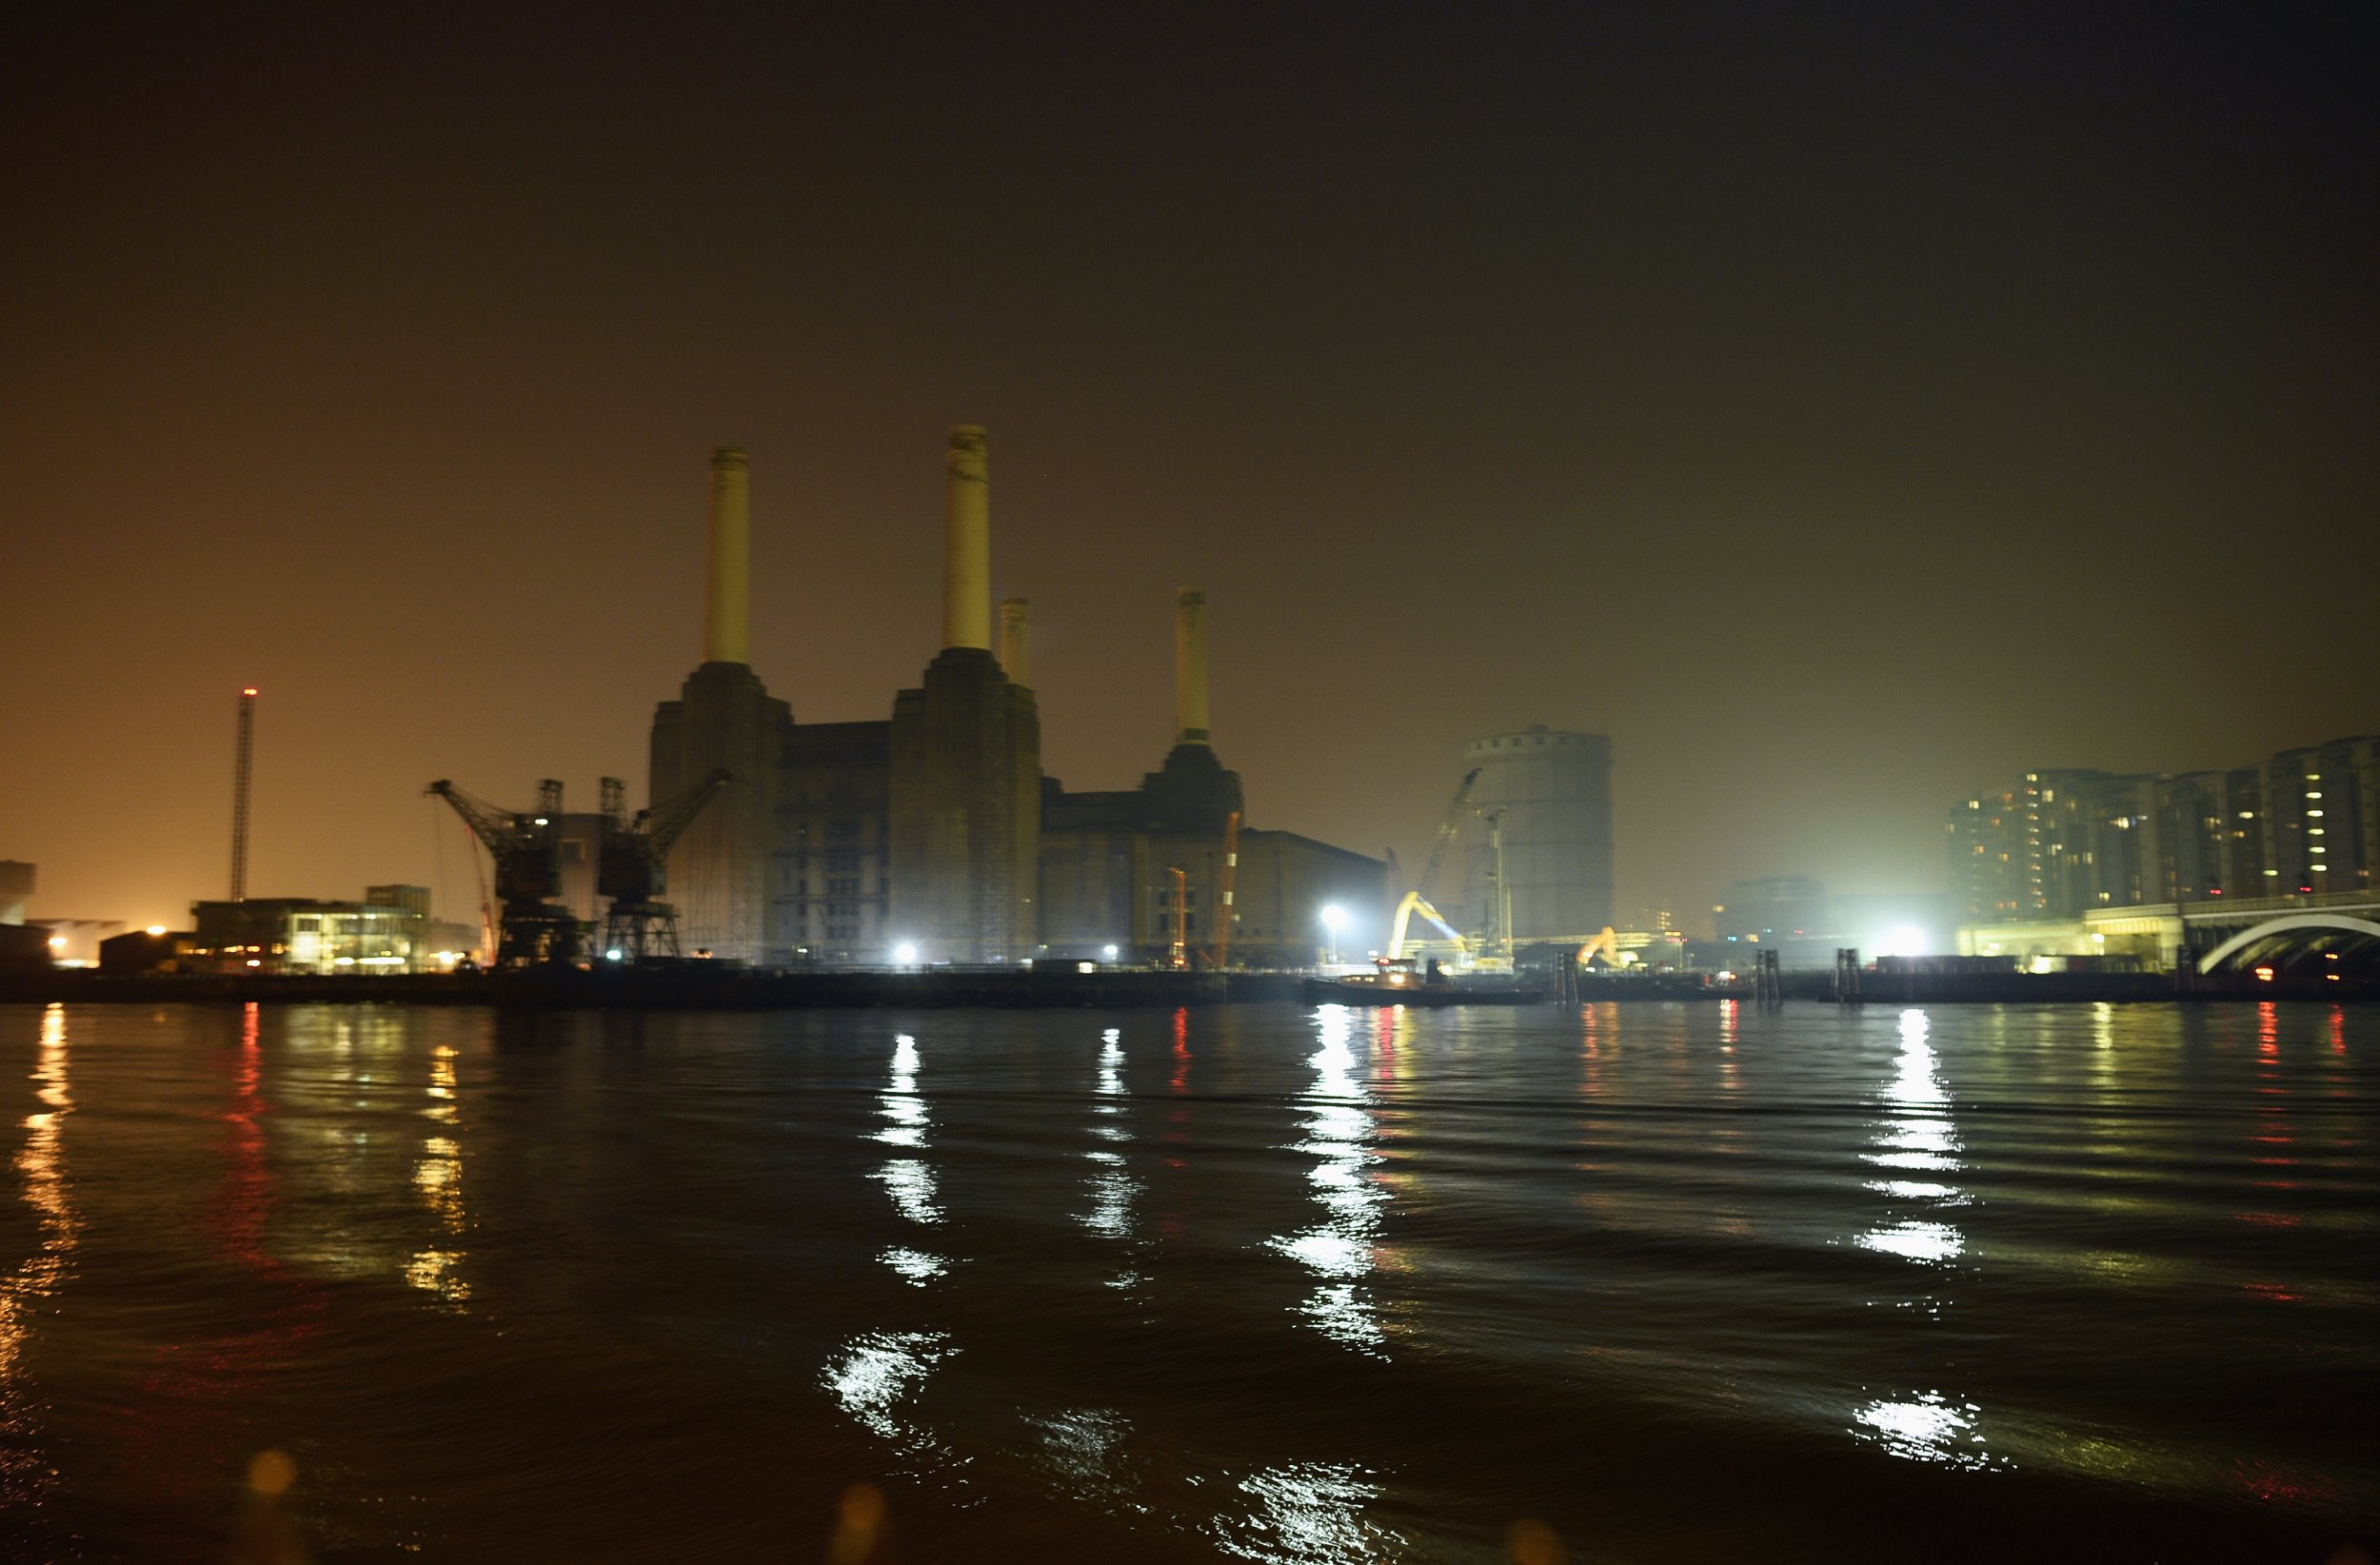 Pink floyd animals - The Building On Pink Floyd S Animals Album Cover Battersea Power Plant Will Be Reconstructed